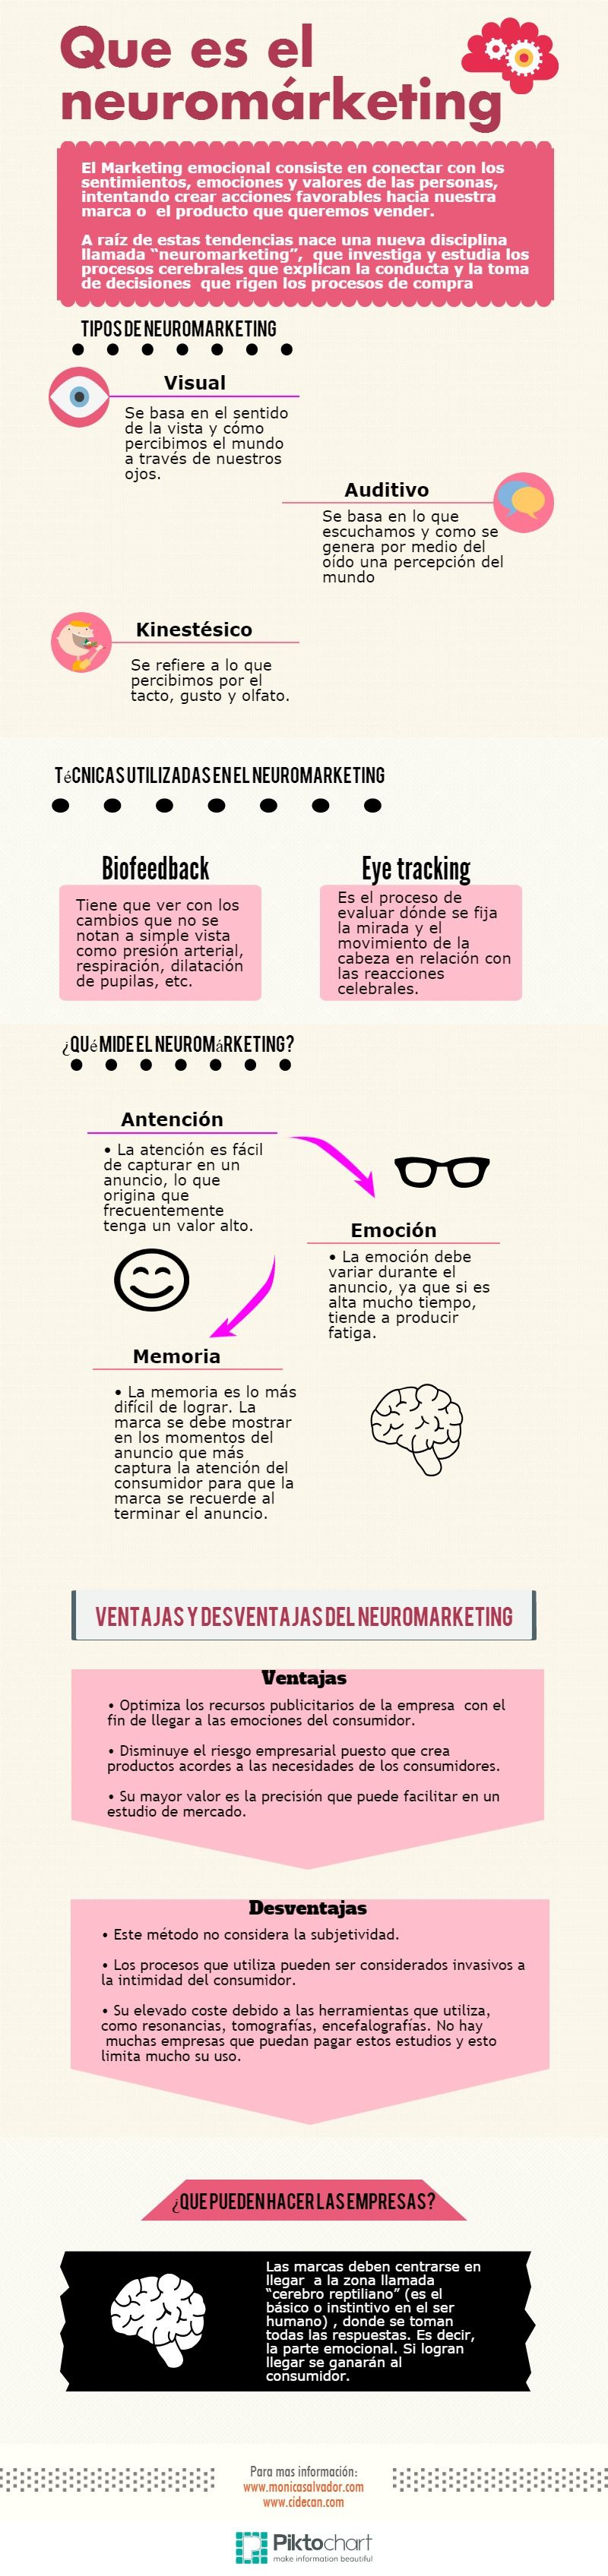 qué es neuromarketing